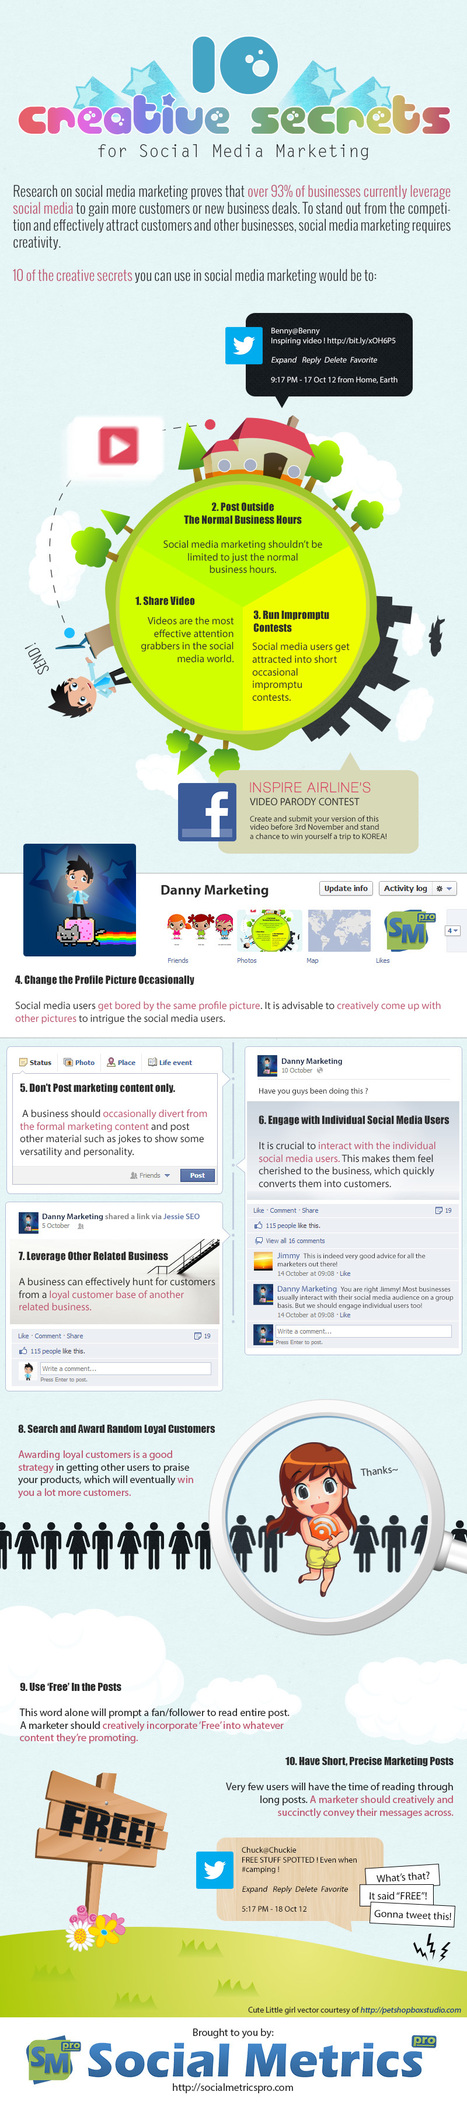 10 Creative Secrets For Social Media Marketing [Infographic] | Social Media Buzz | Scoop.it